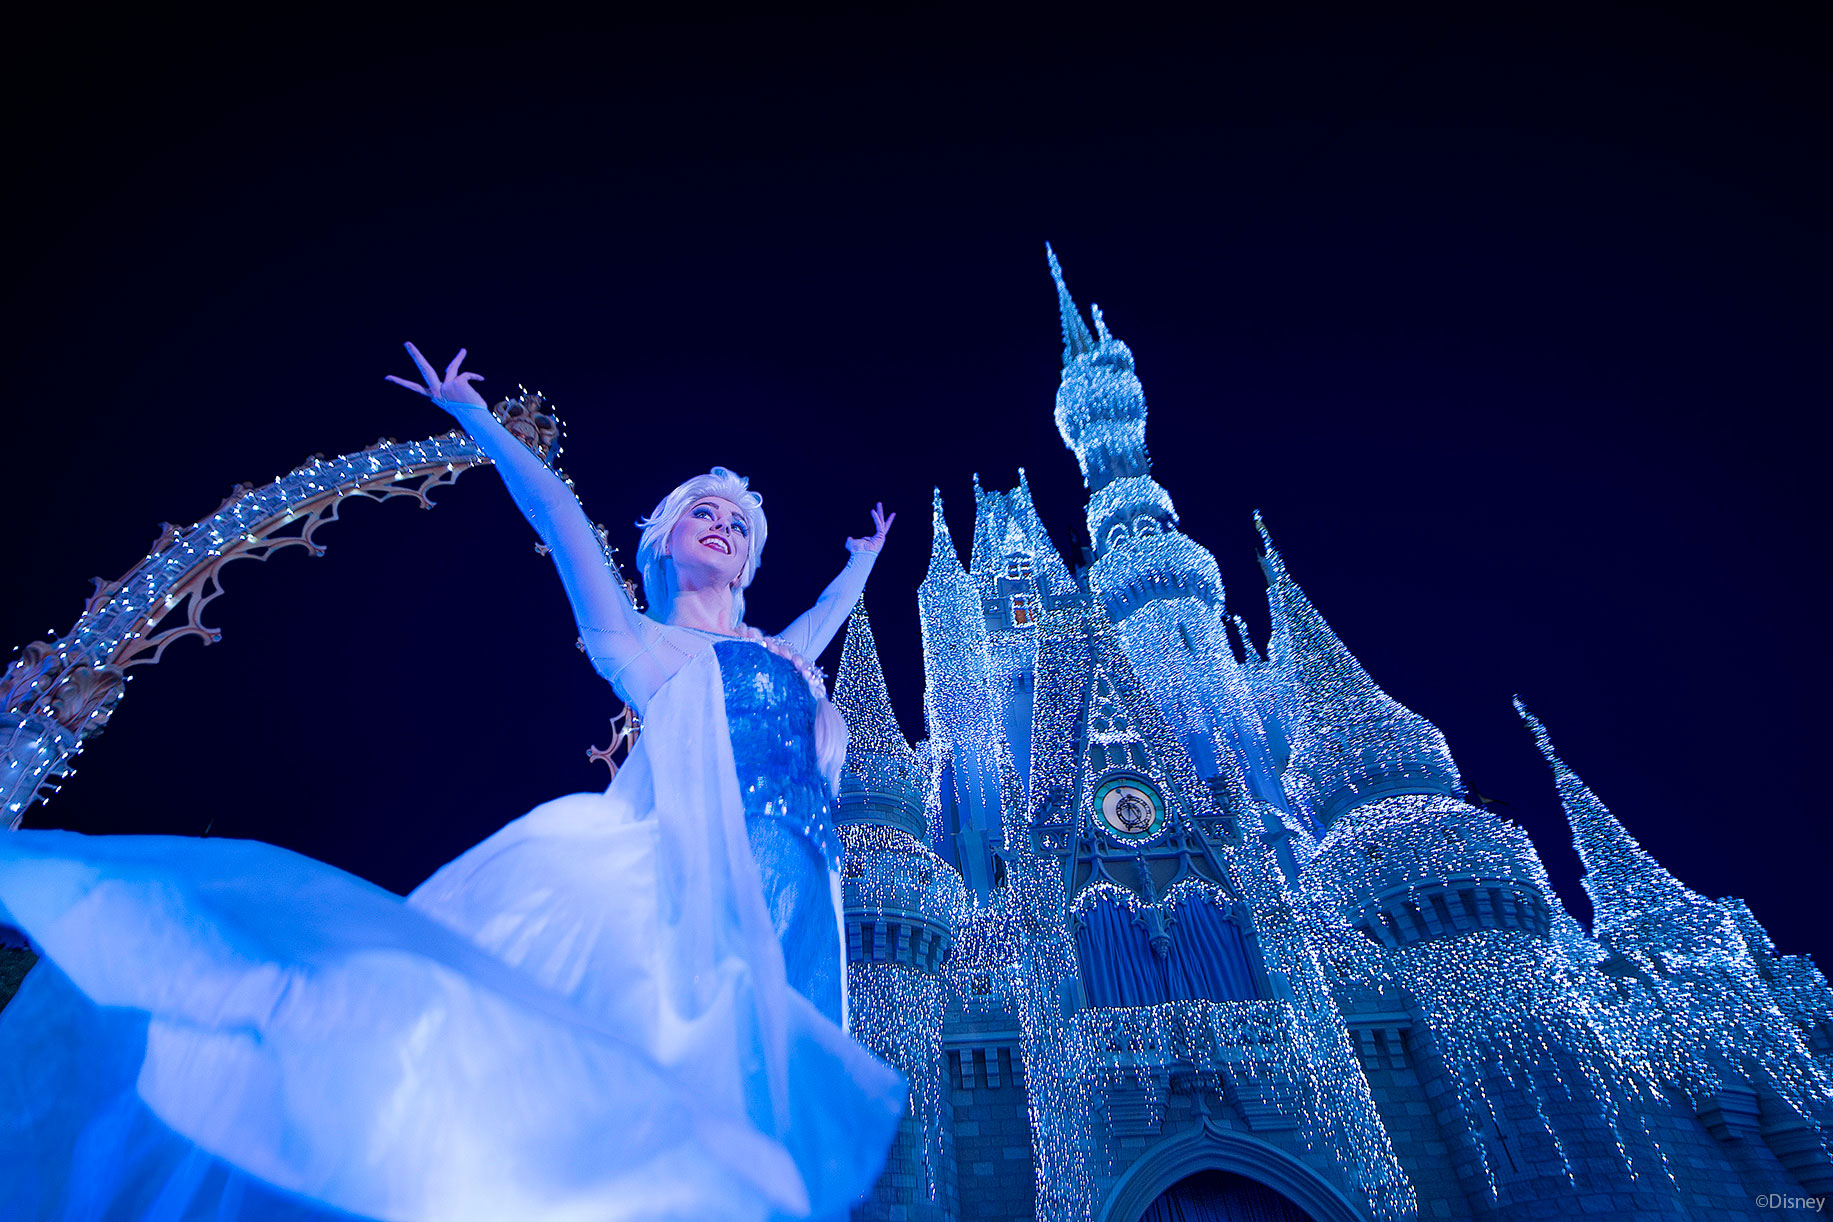 Disneyparkslive Streaming Of A Frozen Holiday Wish Scheduled For 6 10pm Tonight The Disney